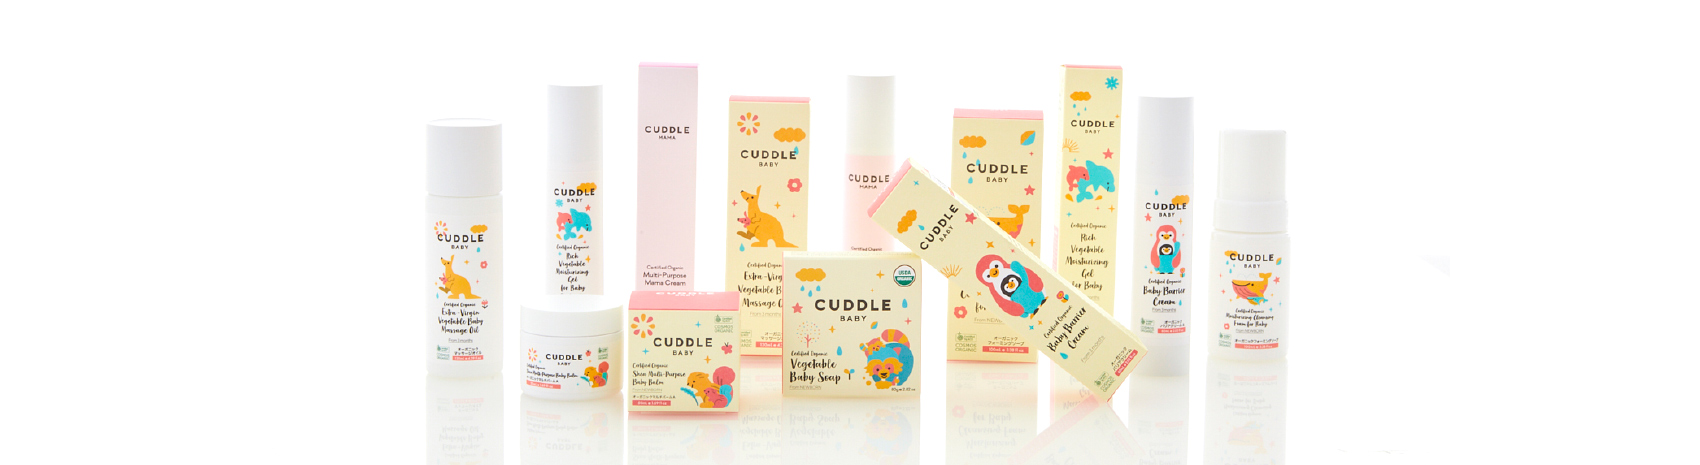 CUDDLE | Products